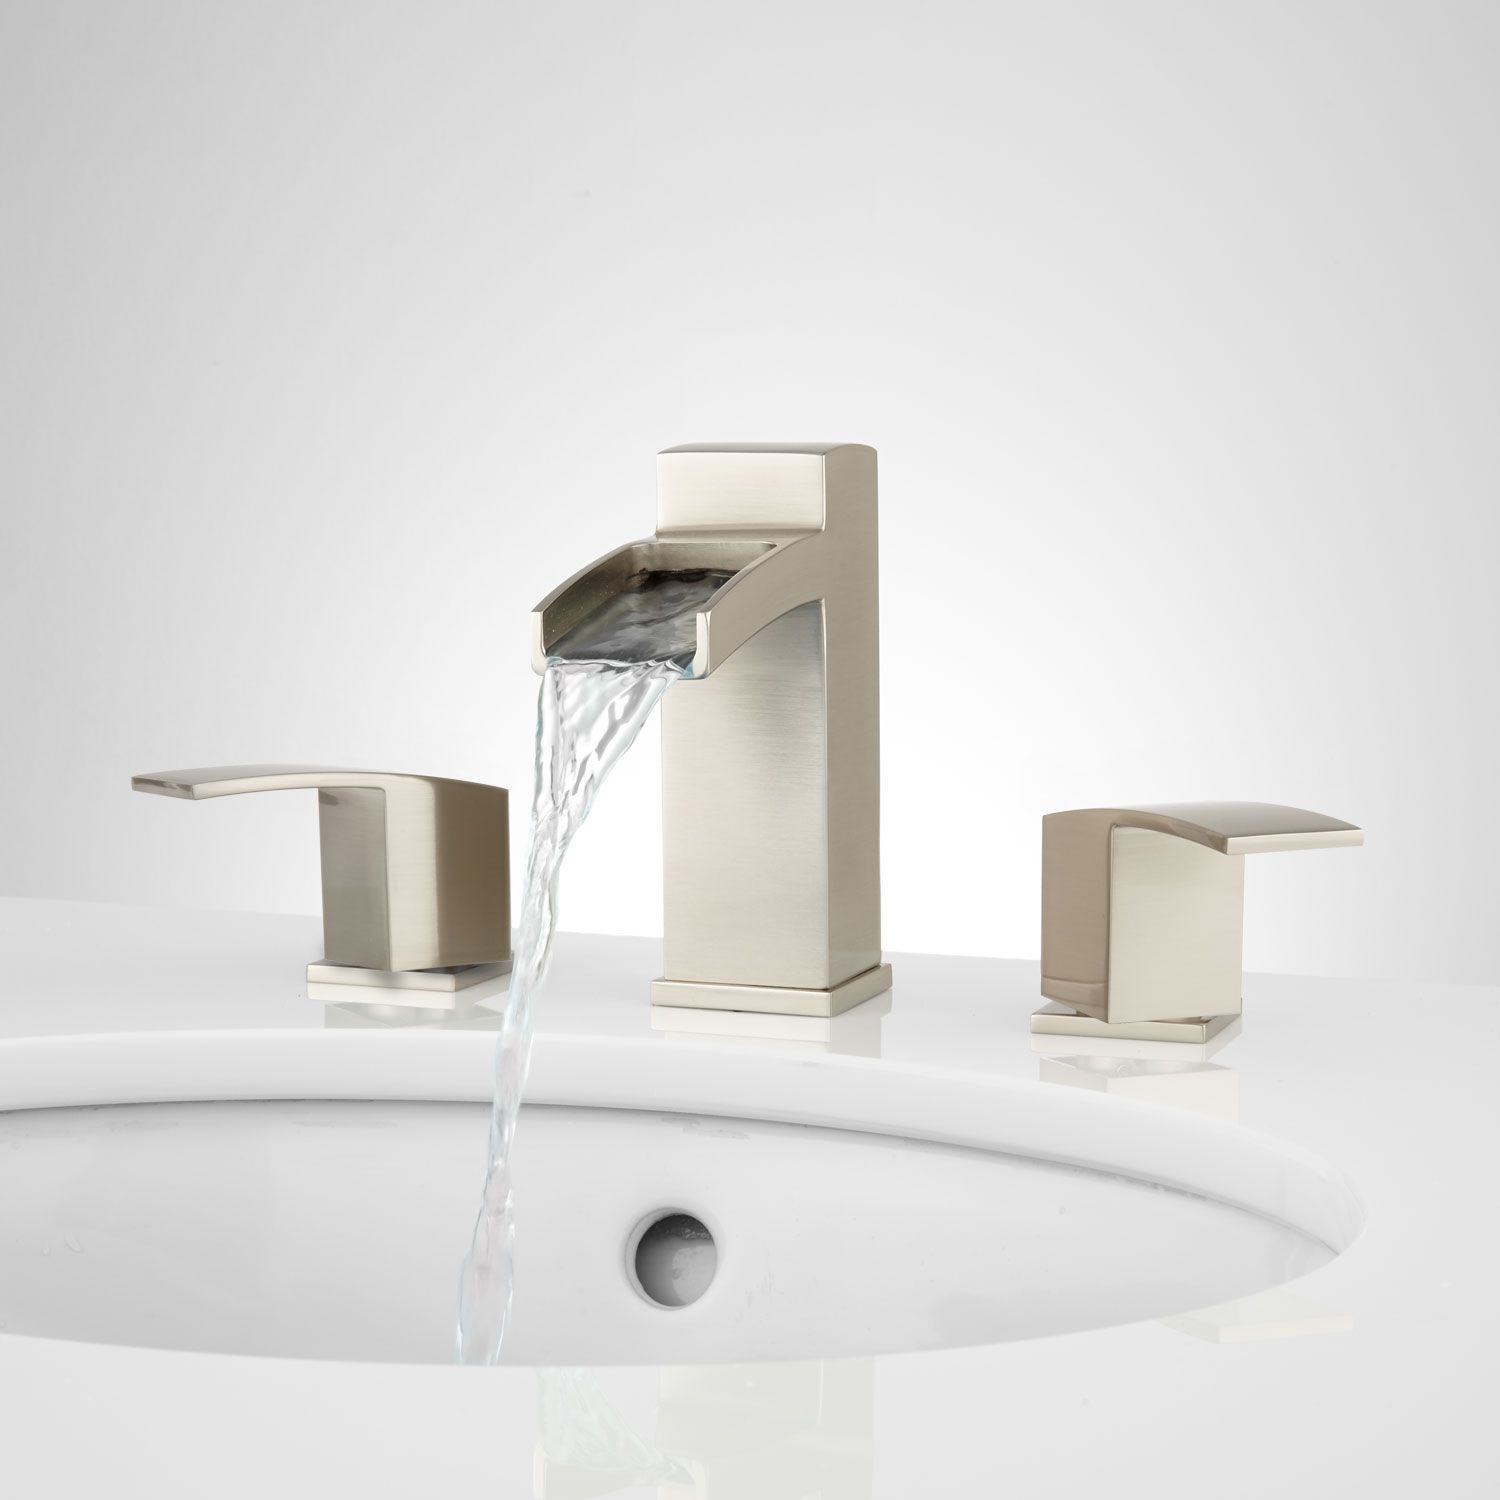 Morata Widespread Waterfall Bathroom Faucet No Overflow